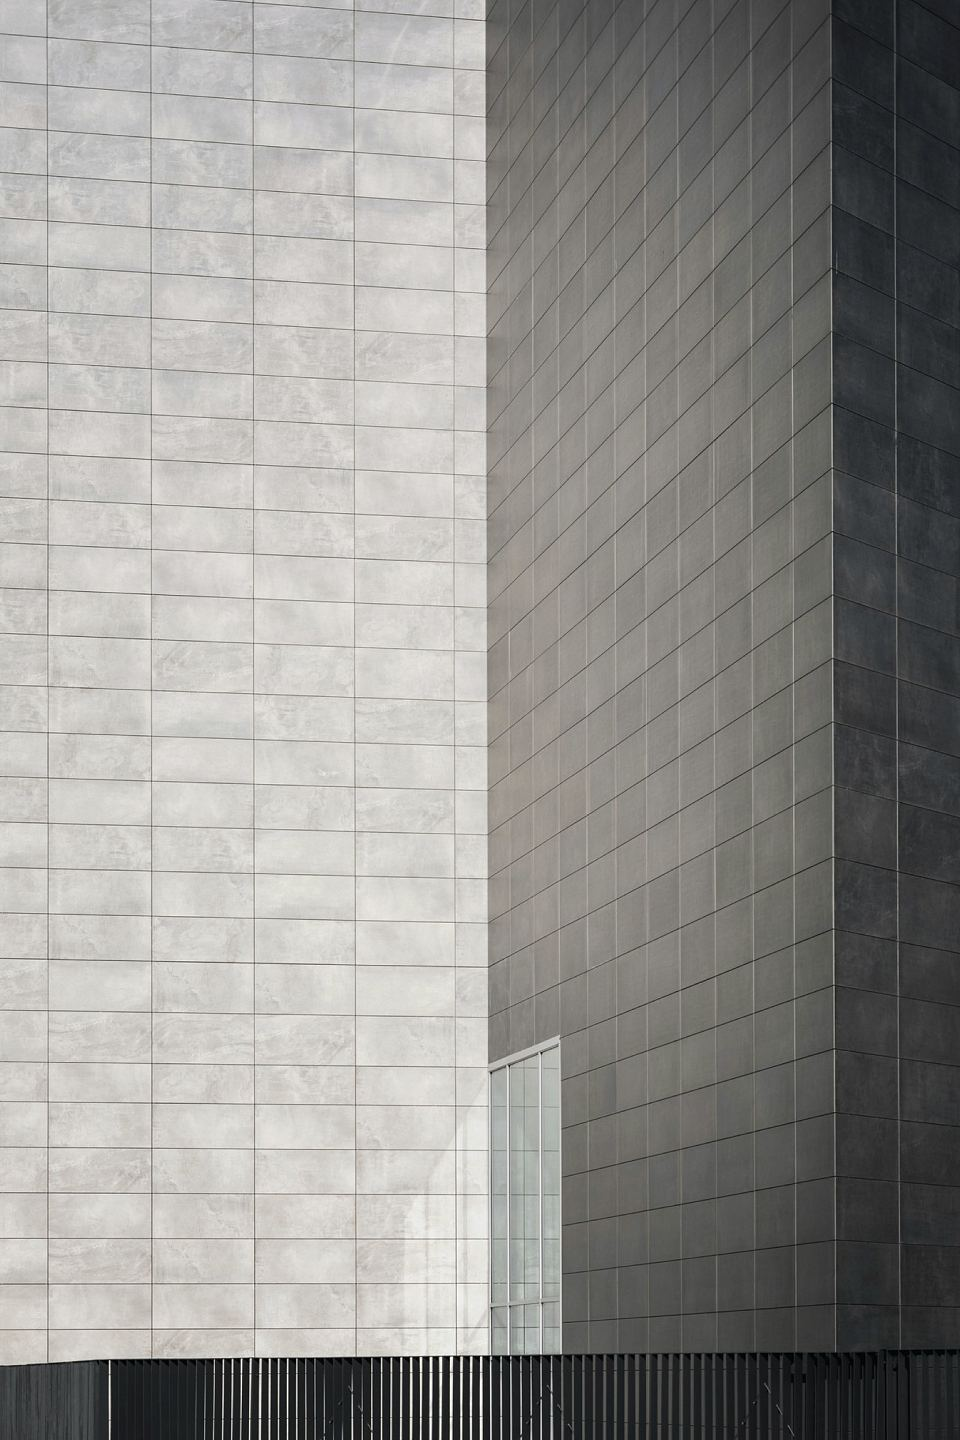 Facade in Core Shade Active in colours Cloudy and Sharp. De Castillia 23 by Urban Up, Gruppo Unipol, Milan.jpg